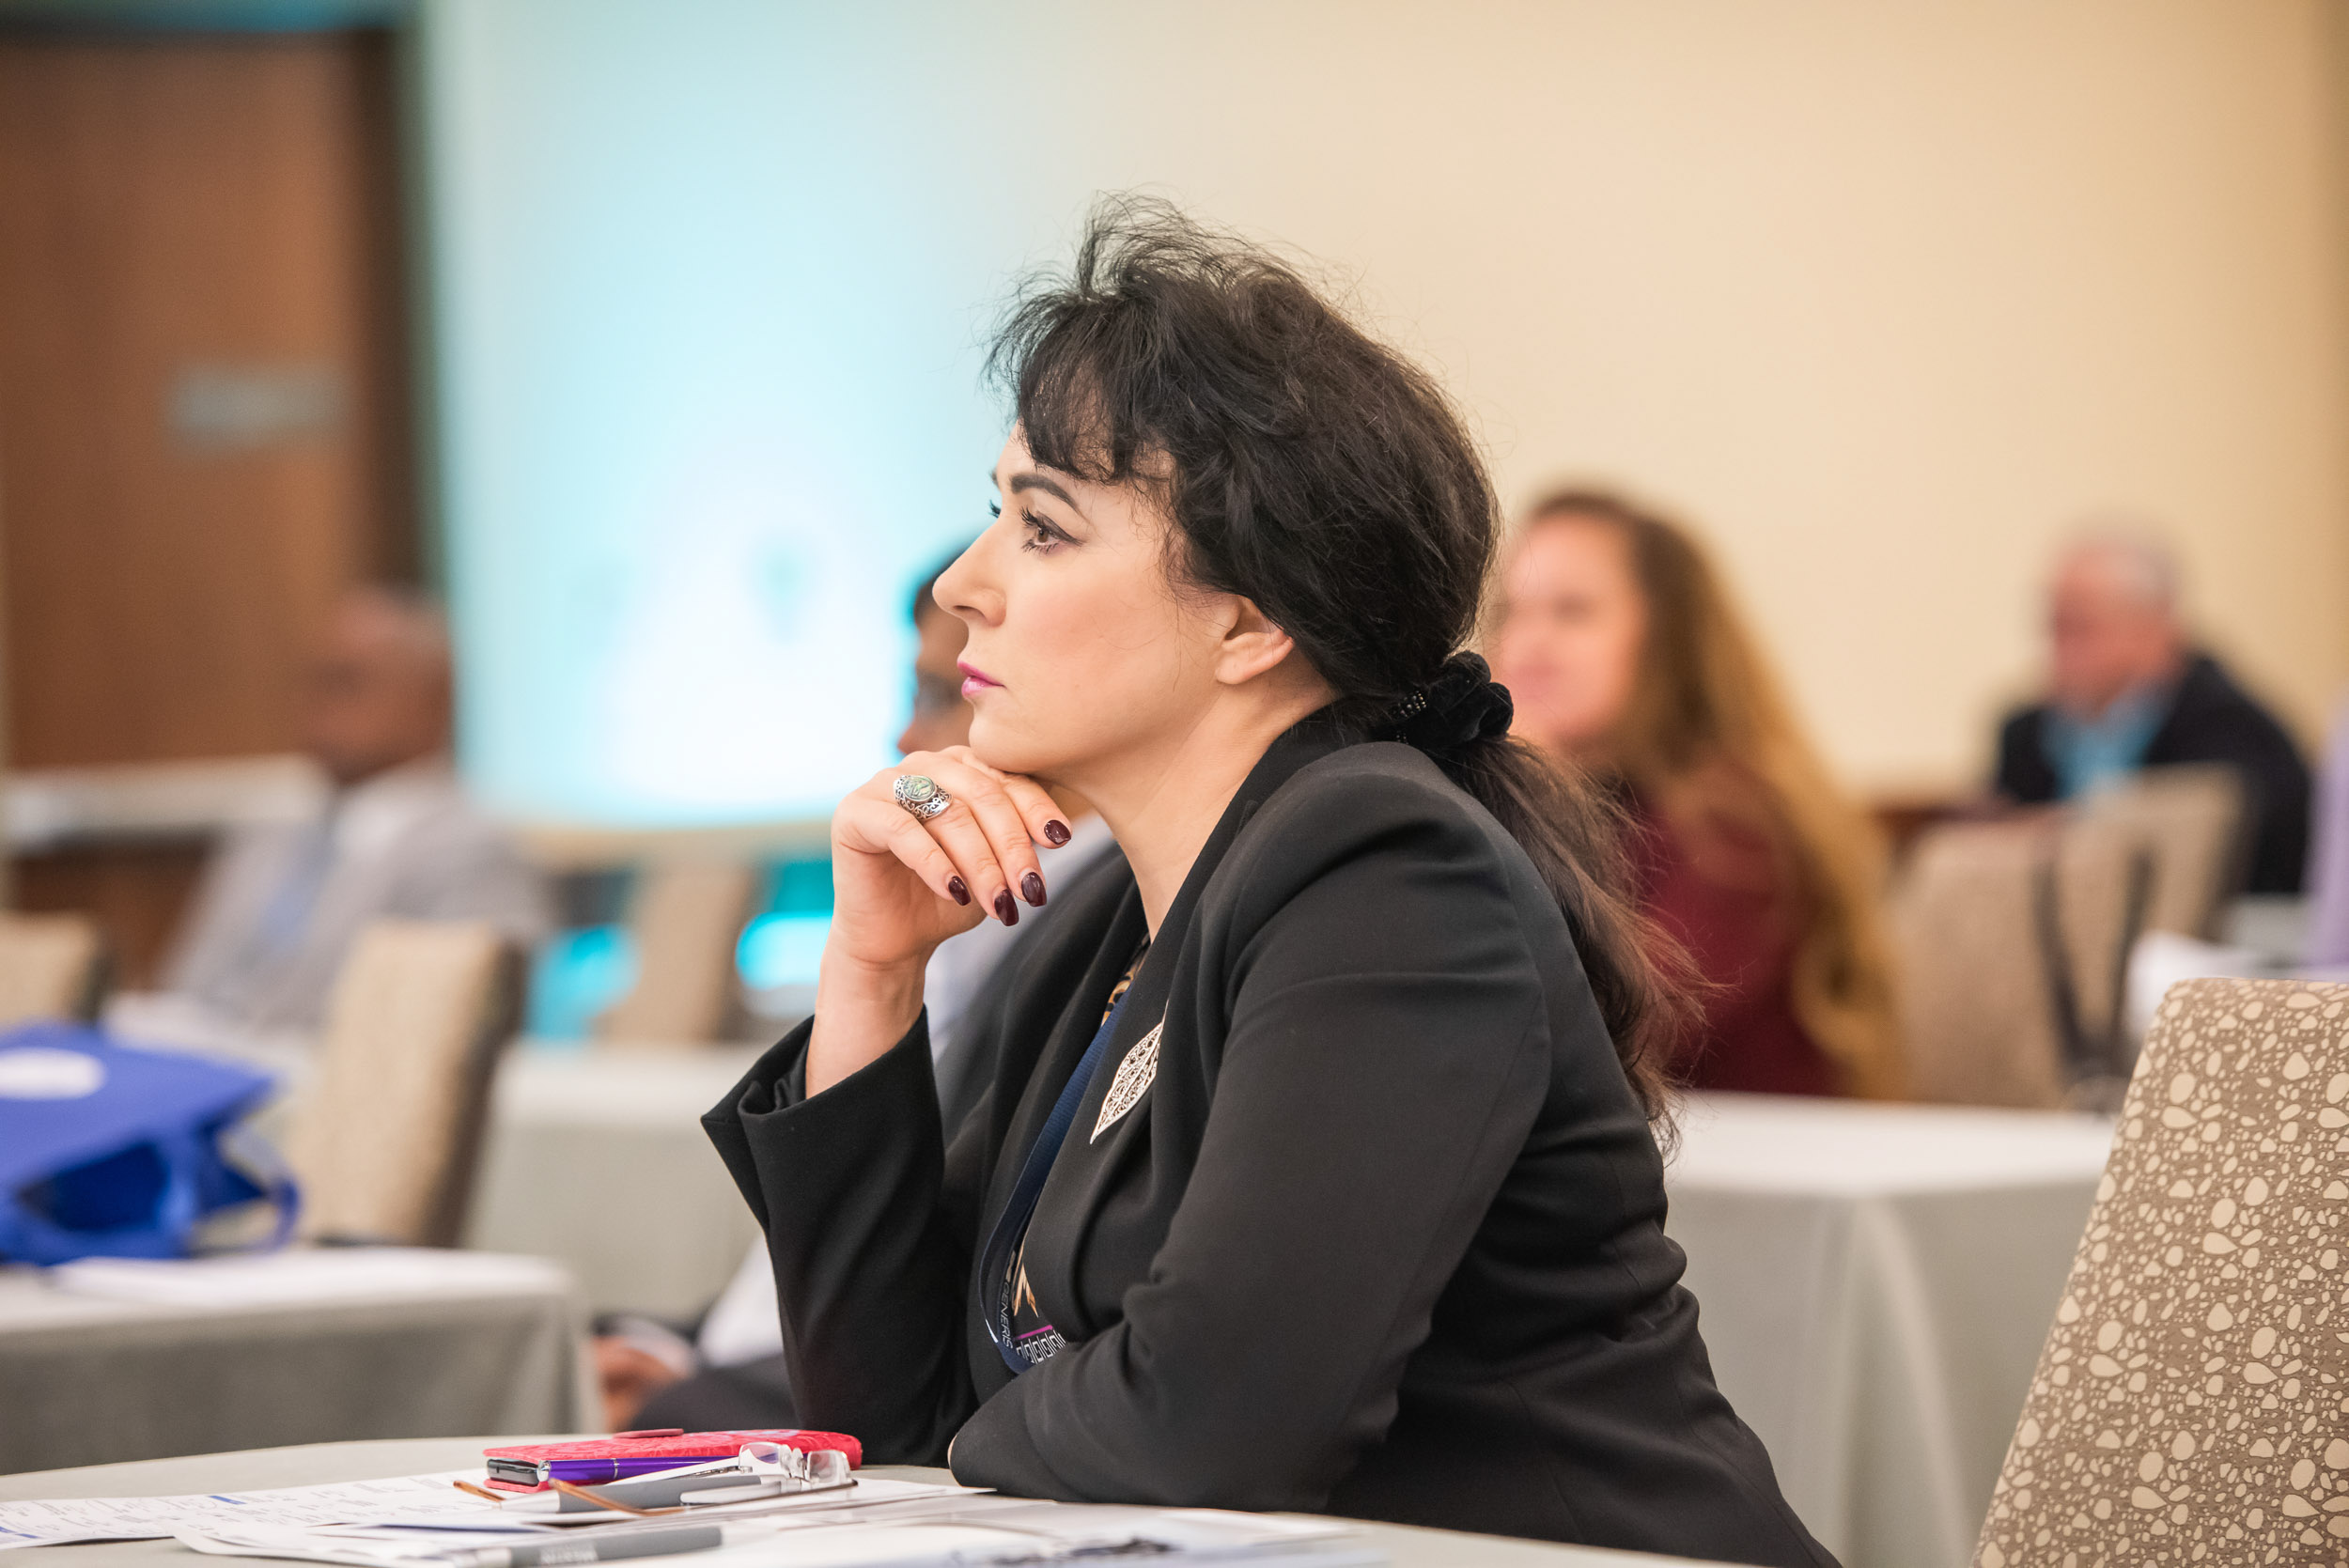 181024 - American Medical Device Summit - mark campbell photography-256_Resized_Resized.jpg